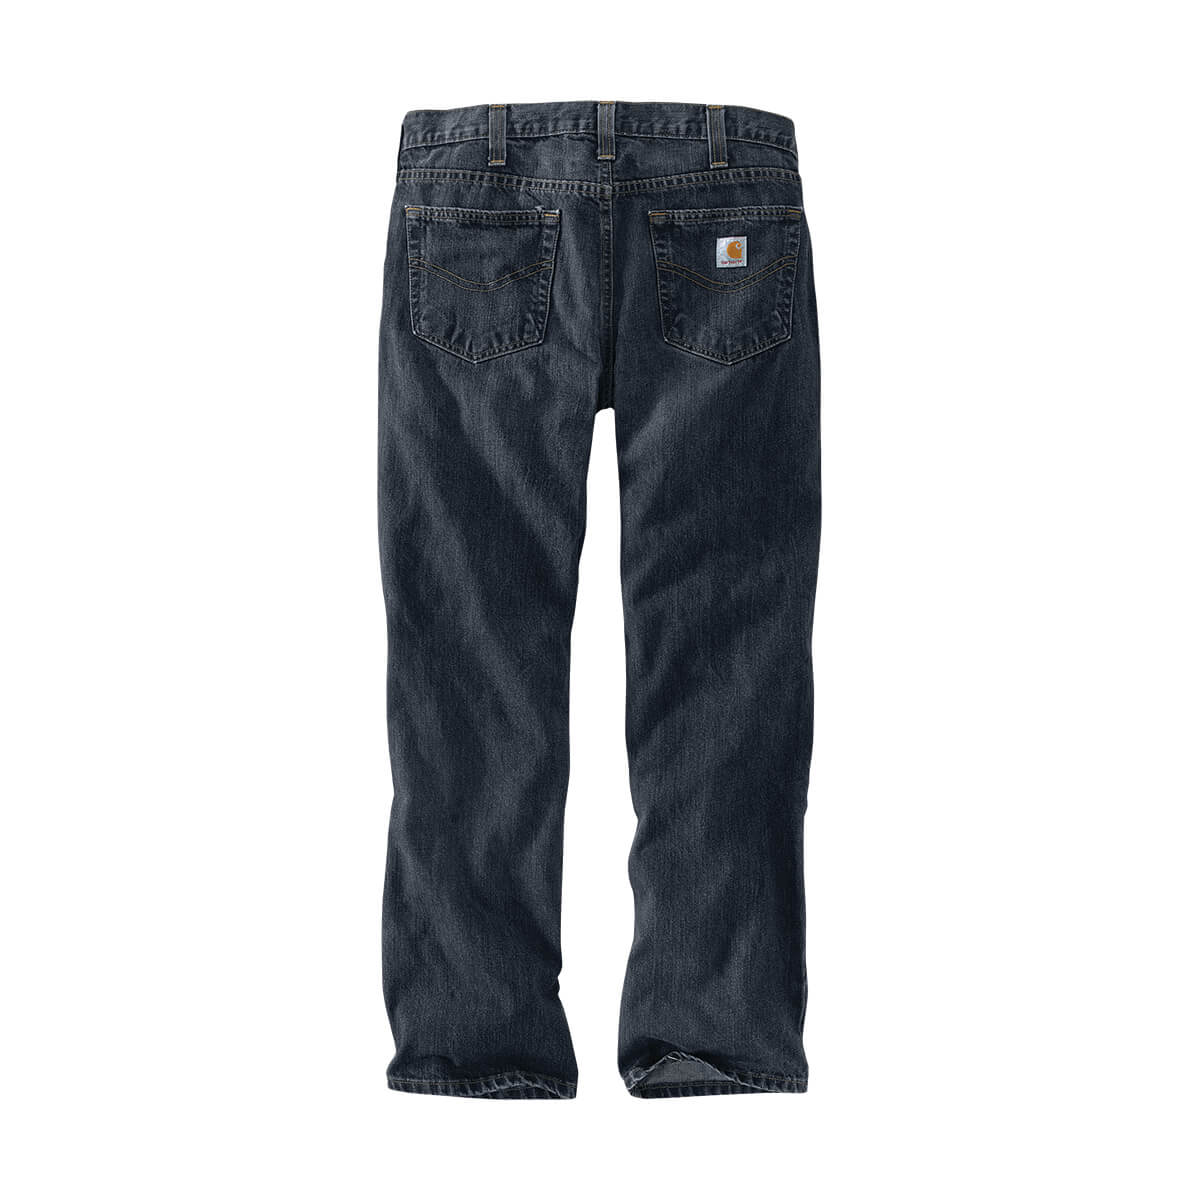 Relaxed Fit Holter Jean - 30 x 32